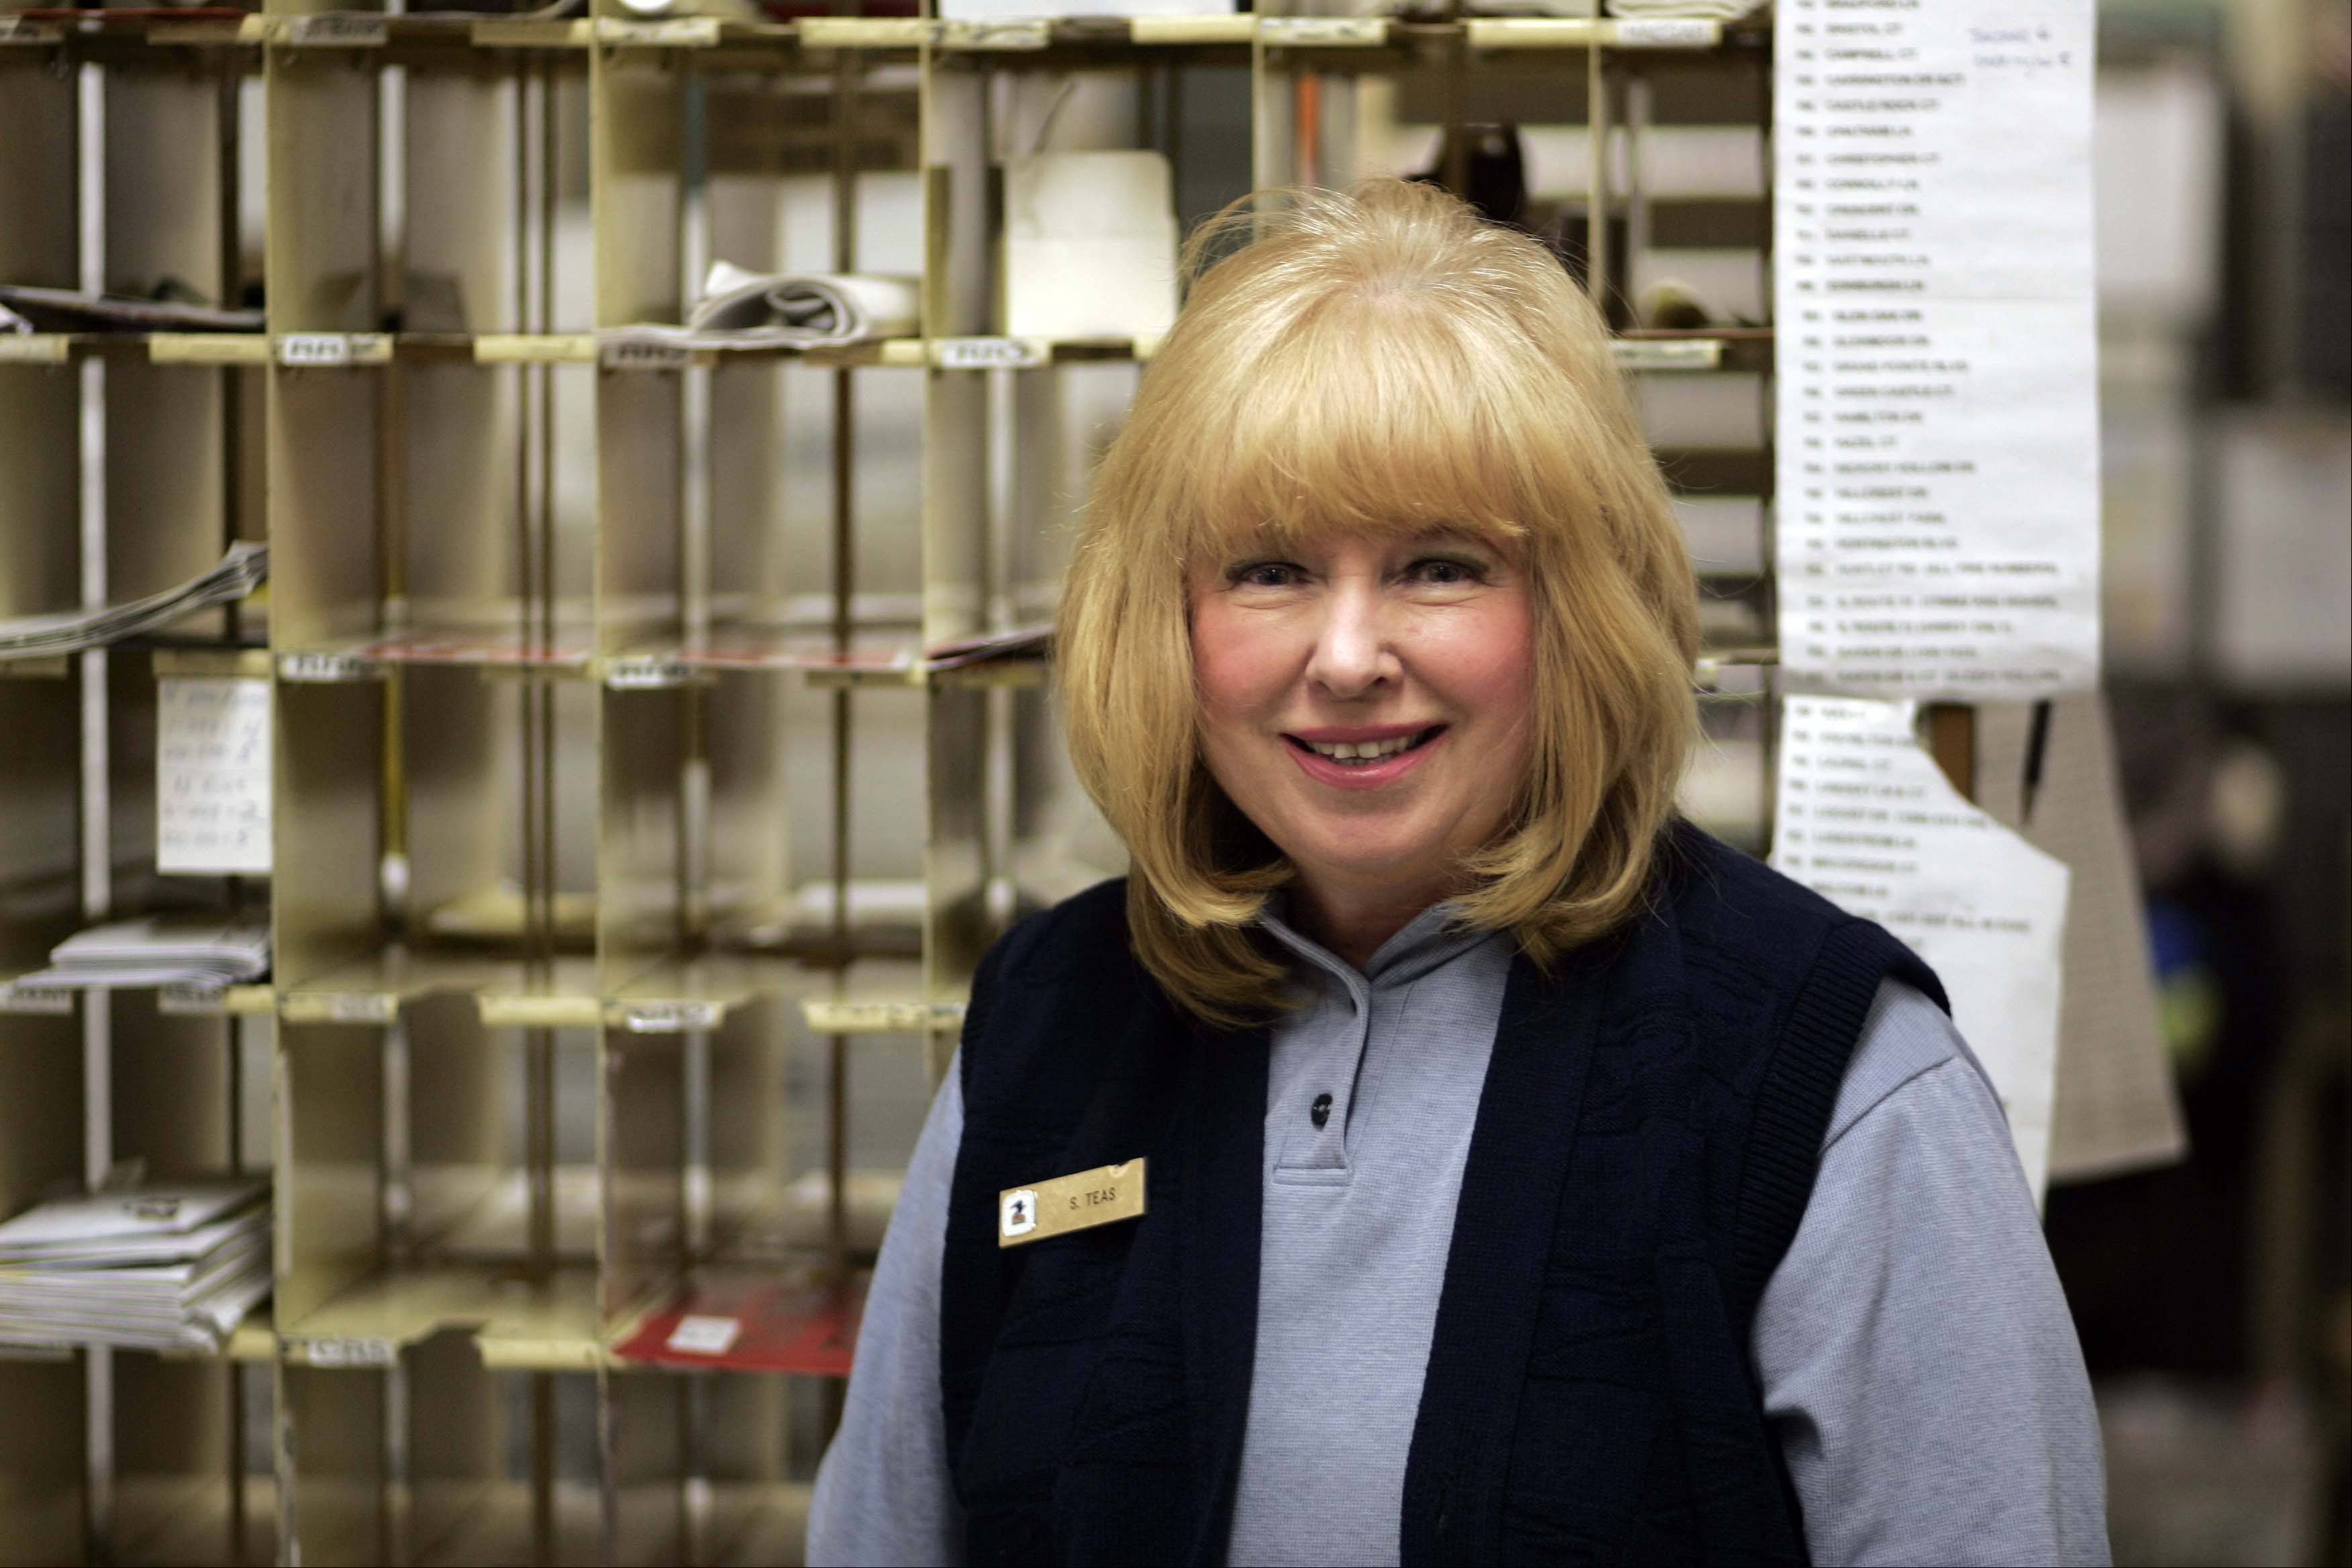 Sue Teas will retire from the West Dundee post office after 29 years.